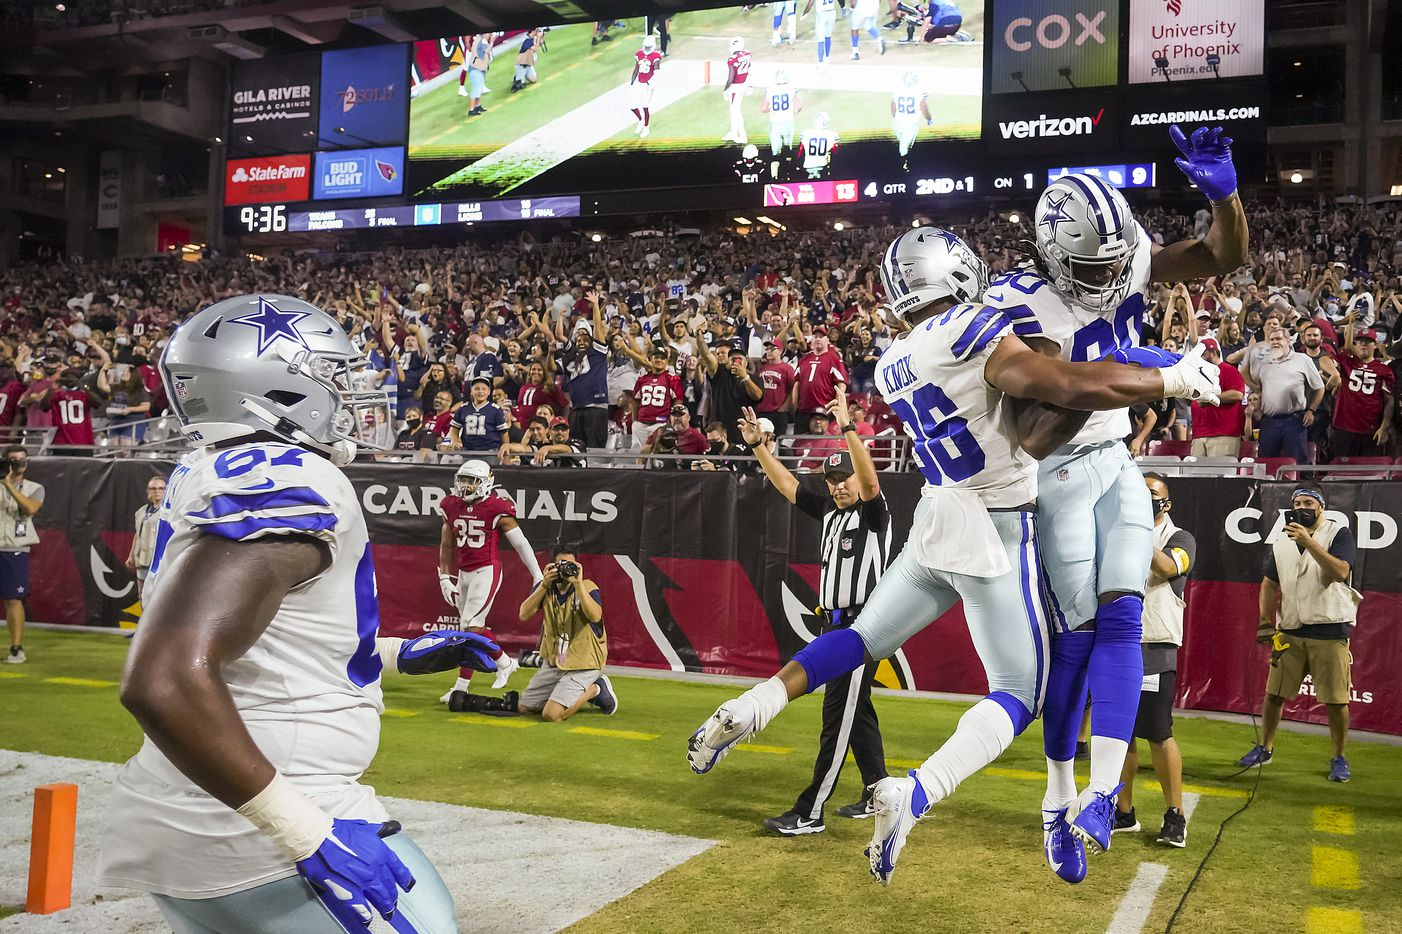 Dallas Cowboys wide receiver Brandon Smith (80) celebrates with running back Brenden Knox (36) after catching a 1-yard touchdown pass from quarterback Ben DiNucci during the second half of a preseason NFL football game against the Arizona Cardinals at State Farm Stadium on Friday, Aug. 13, 2021, in Glendale, Ariz.